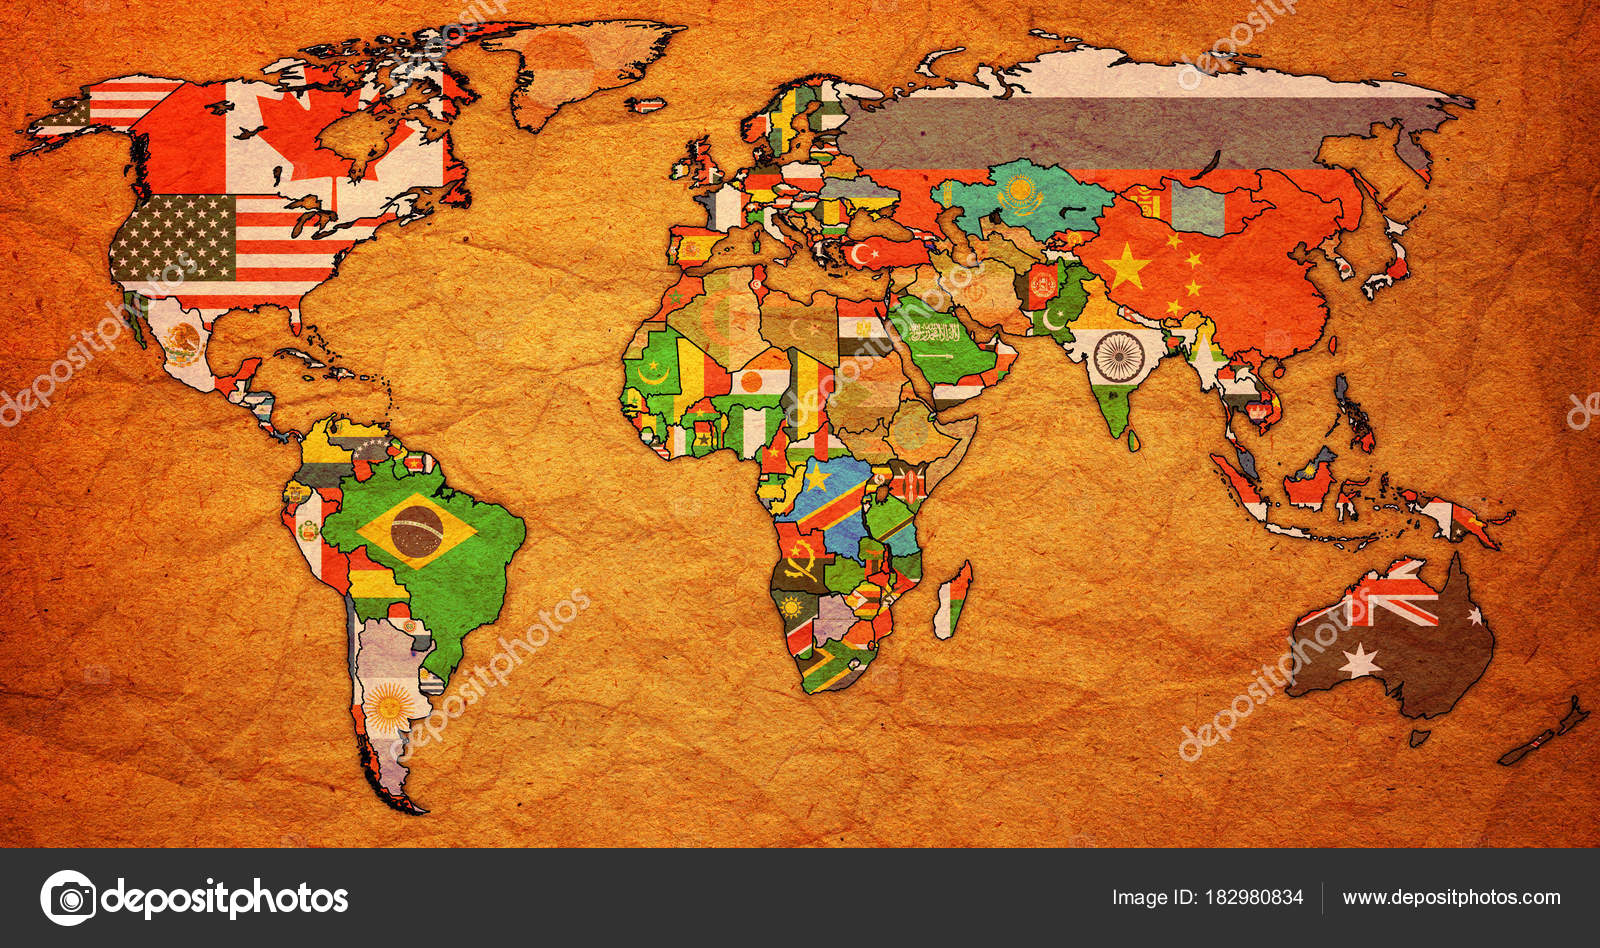 World trade organization territory on world map stock photo world trade organization member countries flags on world map with national borders photo by michal812 gumiabroncs Image collections